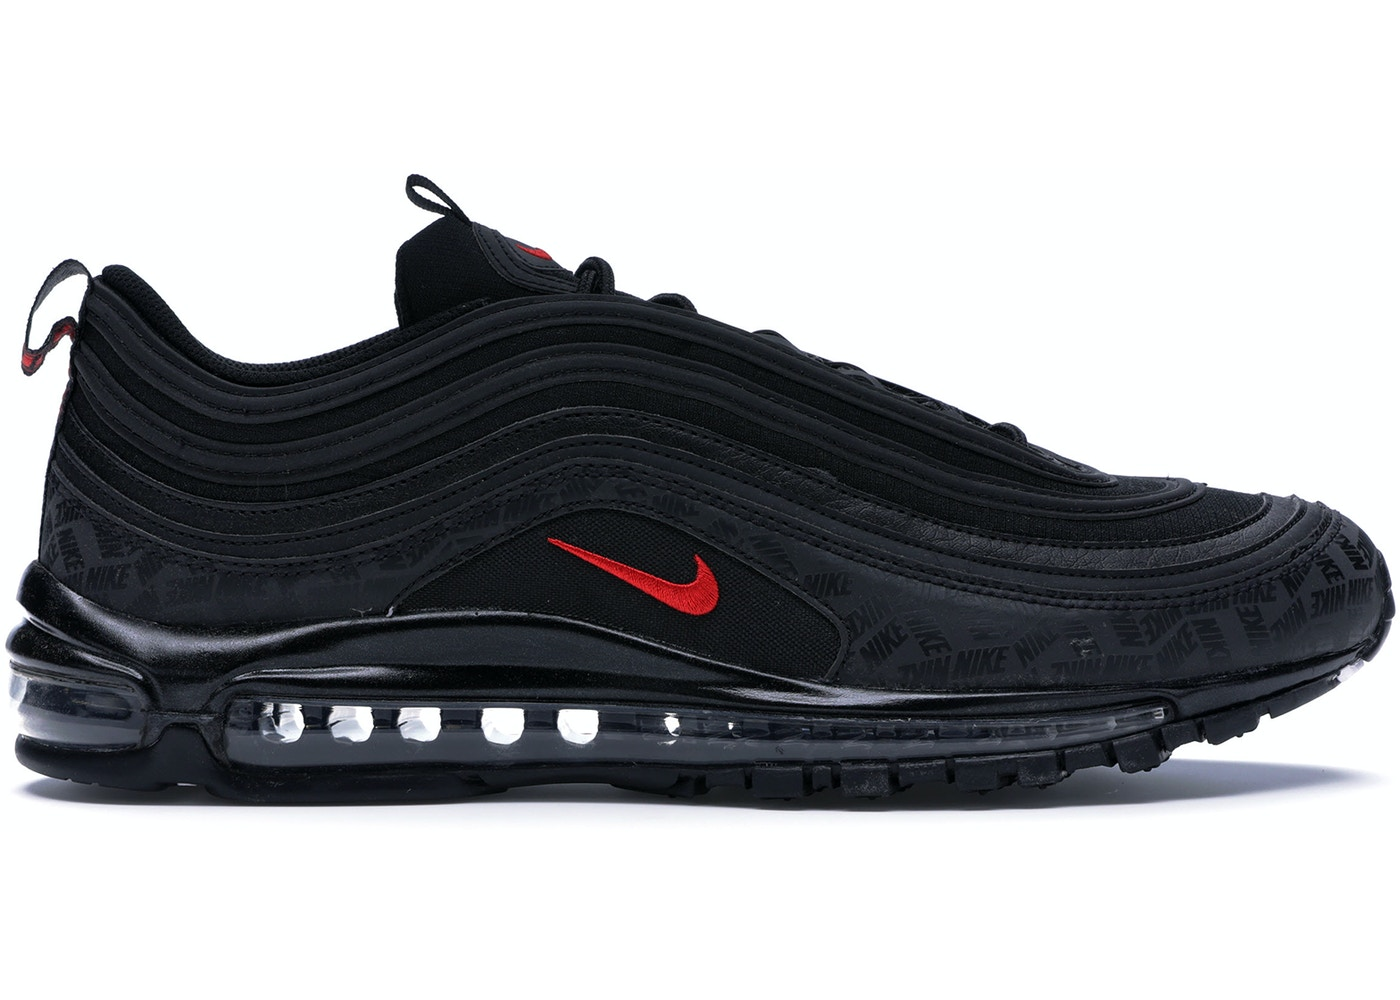 35c0cfd1915bde Air Max 97 All-Over Print Black Red - AR4259-001